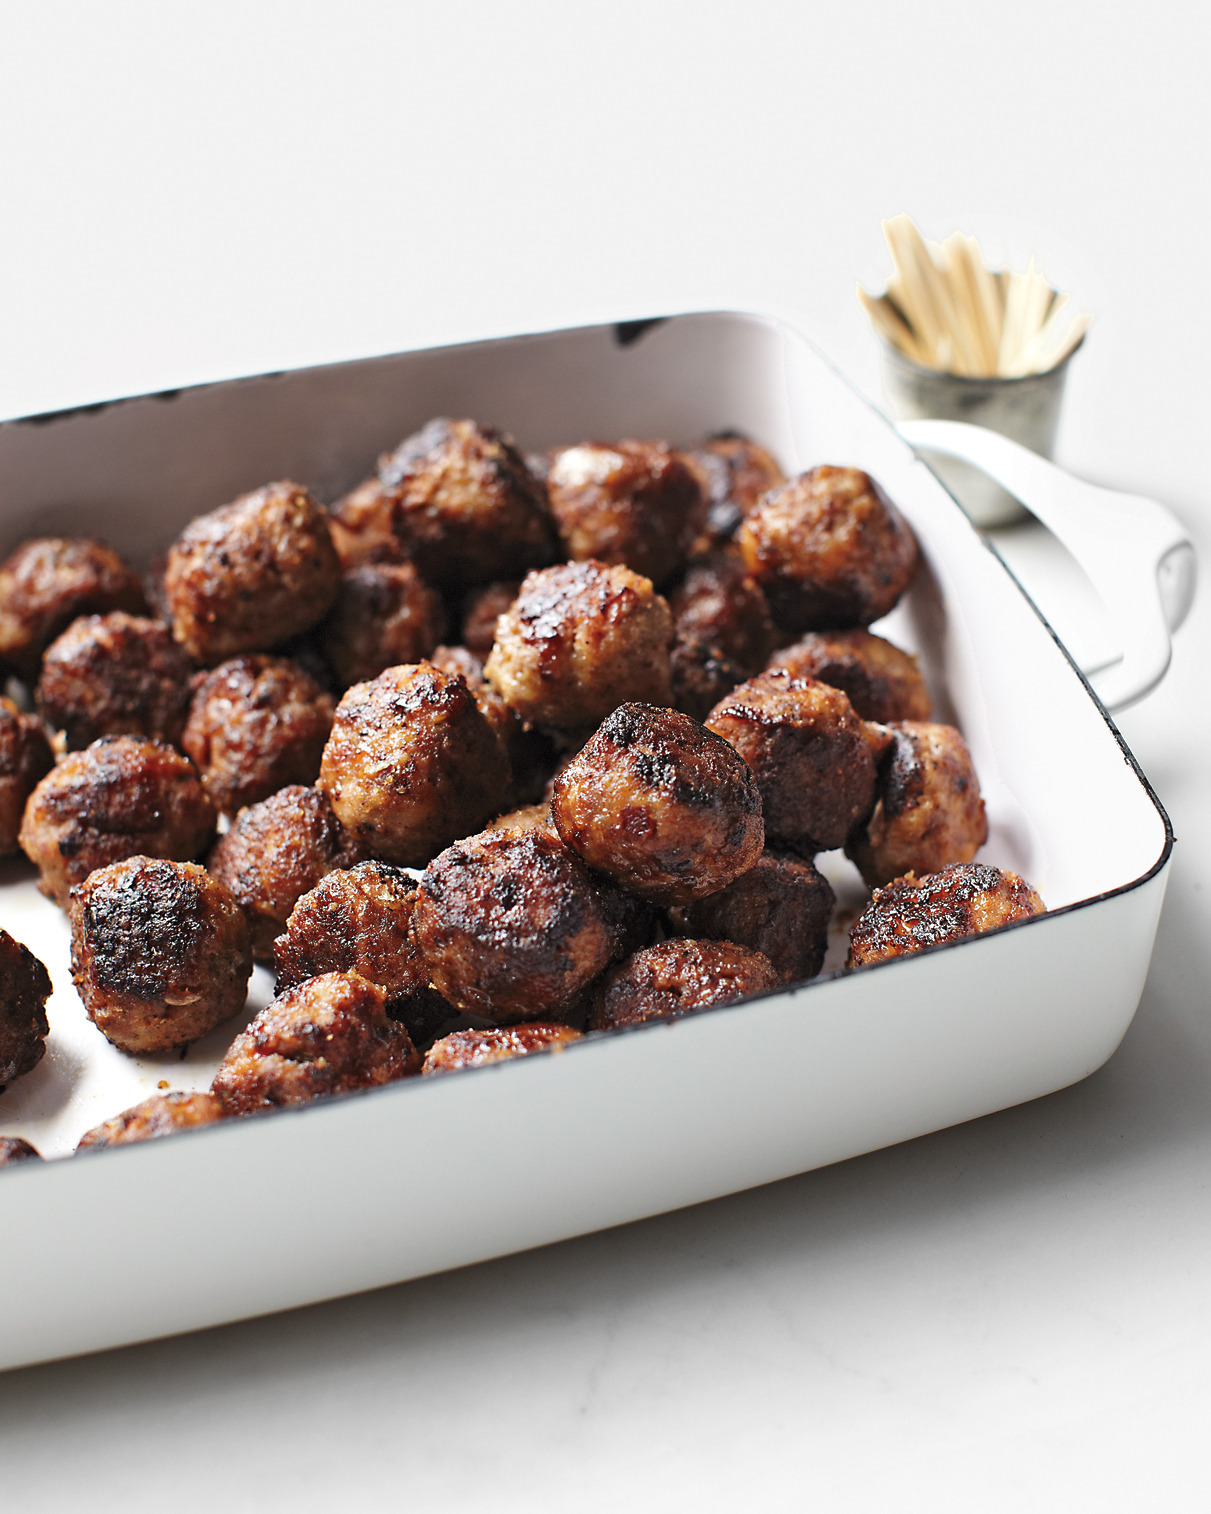 cocktail-meatballs-mld108166.jpg